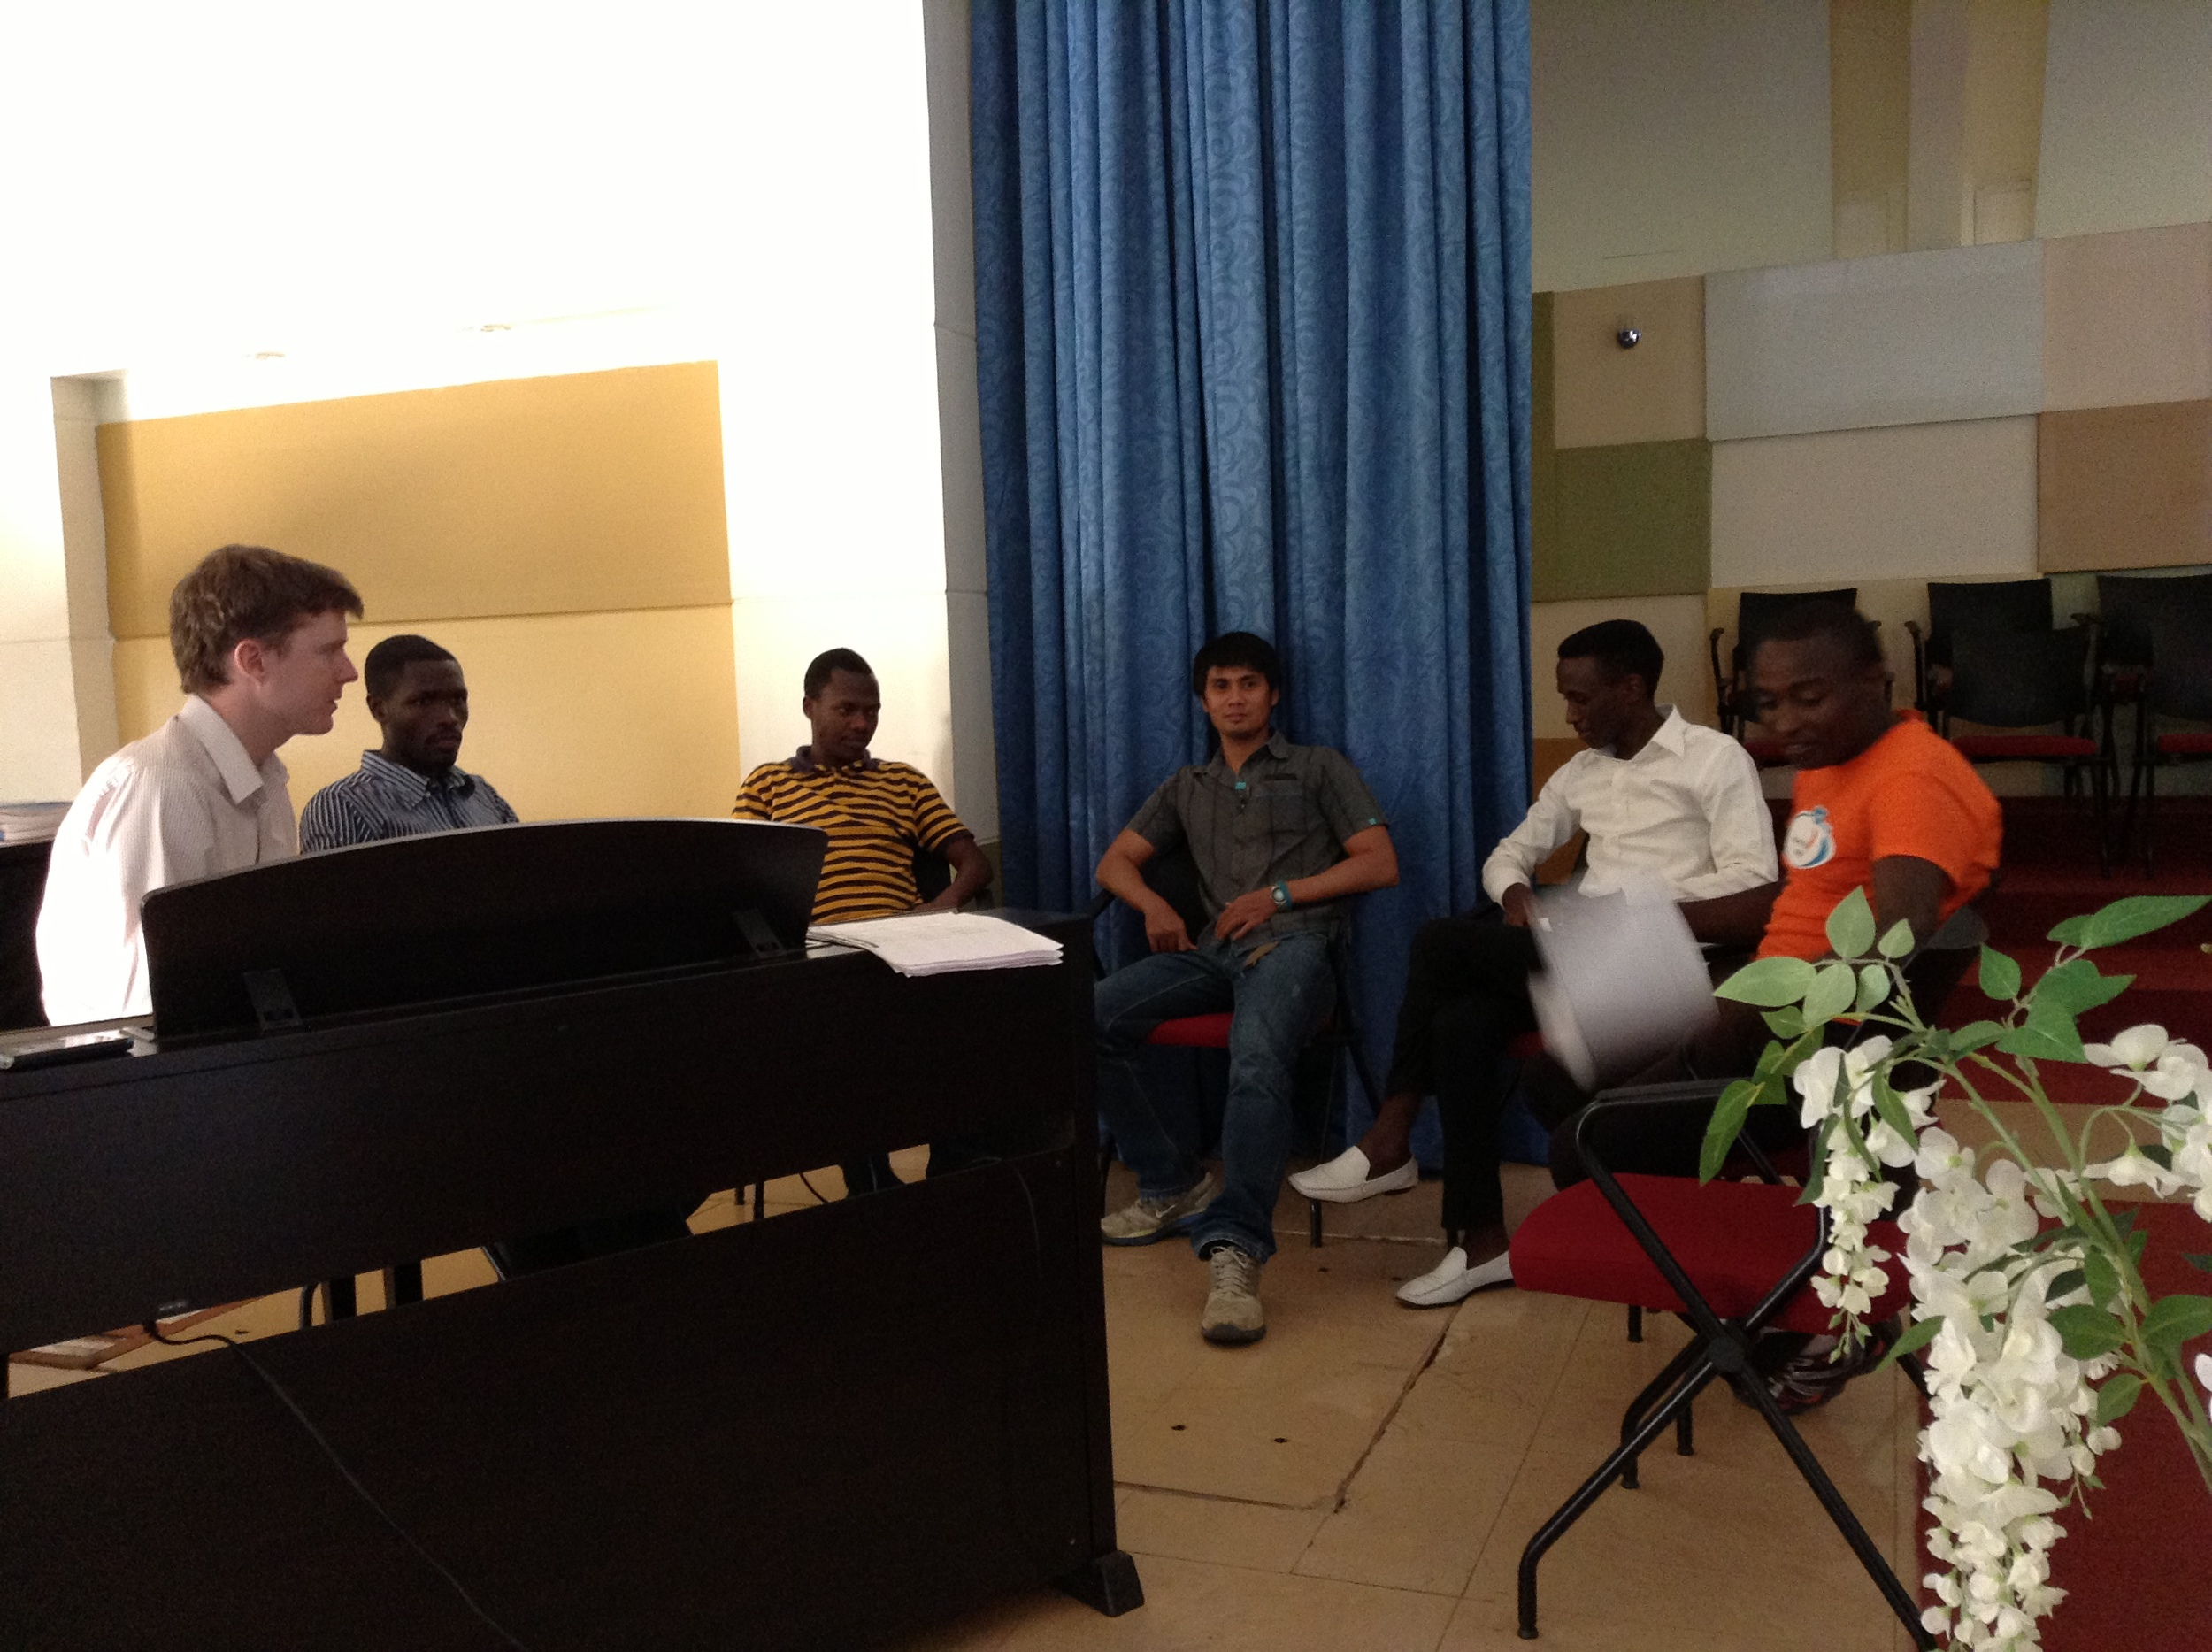 We also have our voice ensemble. There are seven of us, all guys; Danny, myself, and five AUCA students. Along with Danny (the Filipino looking guy in this pic), we are really working on harnessing the power of their voices to create a strong, pure, and harmonious sound. When you combine the power of an African voice with proper technique and pitch, there is nothing else like it.